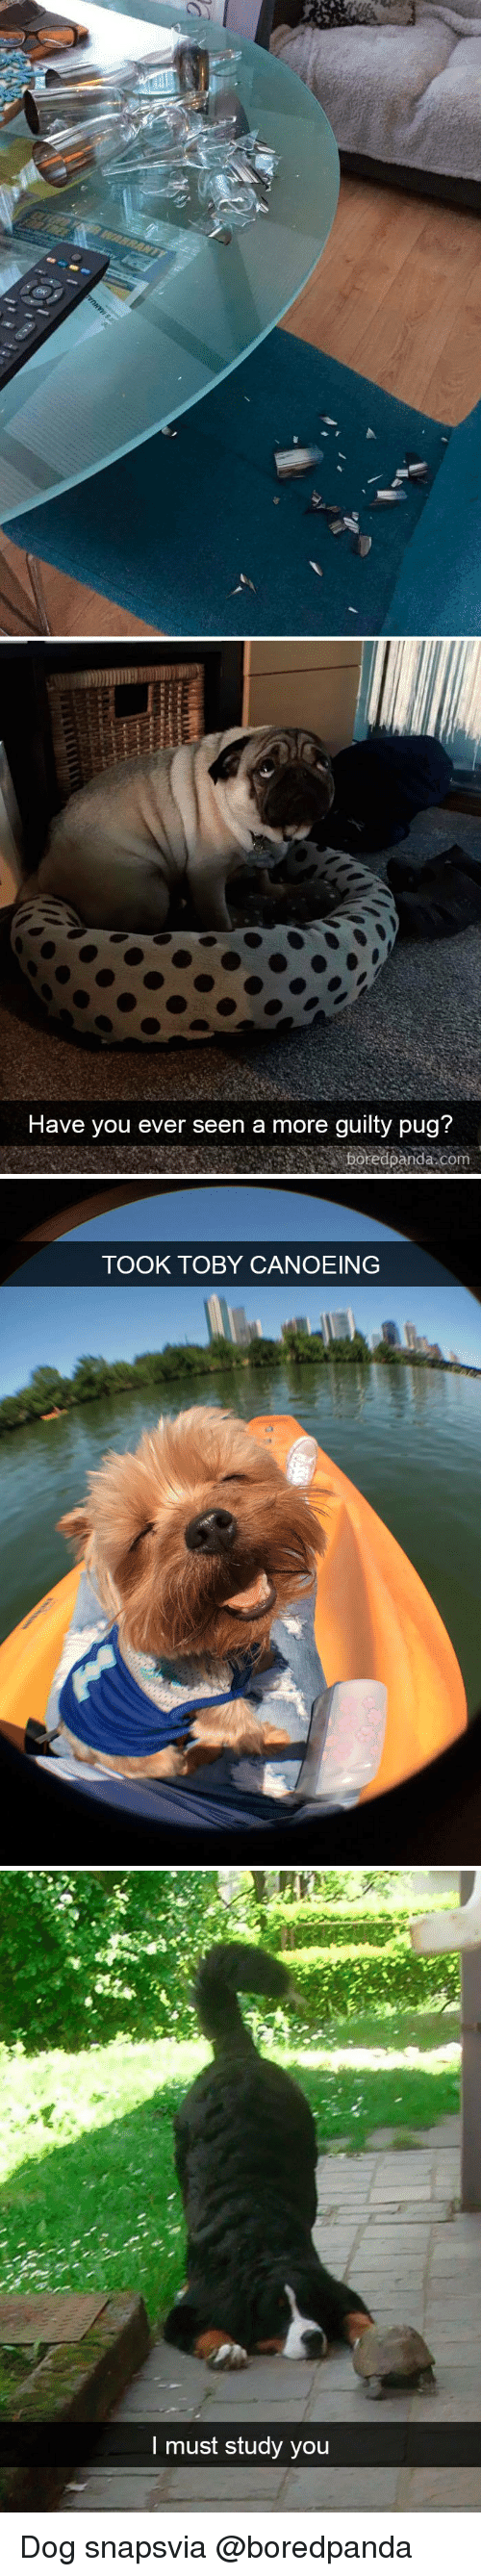 Canoeing: Have vou ever seen a more quilty pua?  boredpanda com   TOOK TOBY CANOEING   I must study you Dog snapsvia @boredpanda